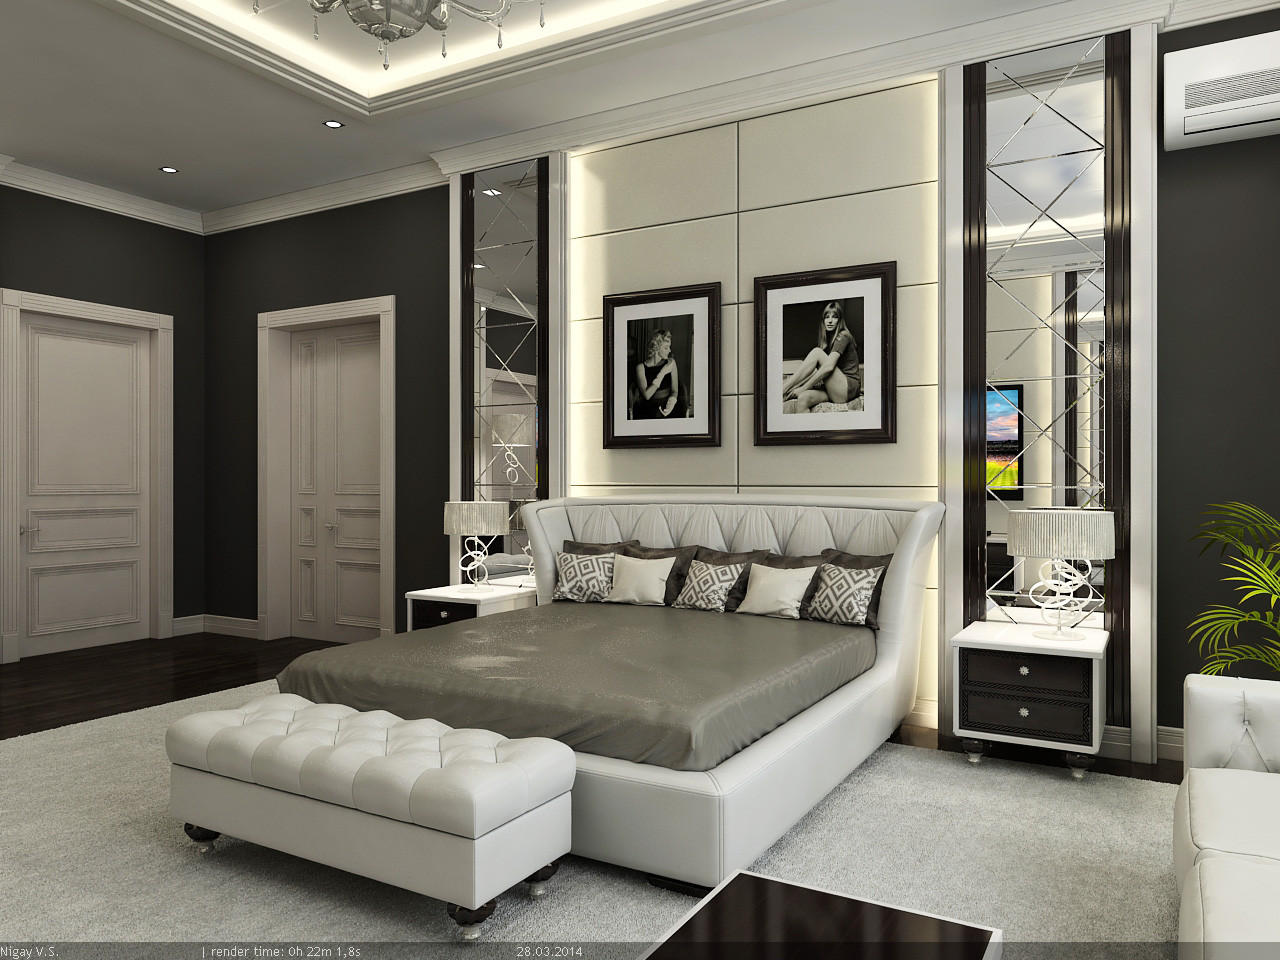 interior master bedroom 3d model on Model Bedroom Ideas  id=41389